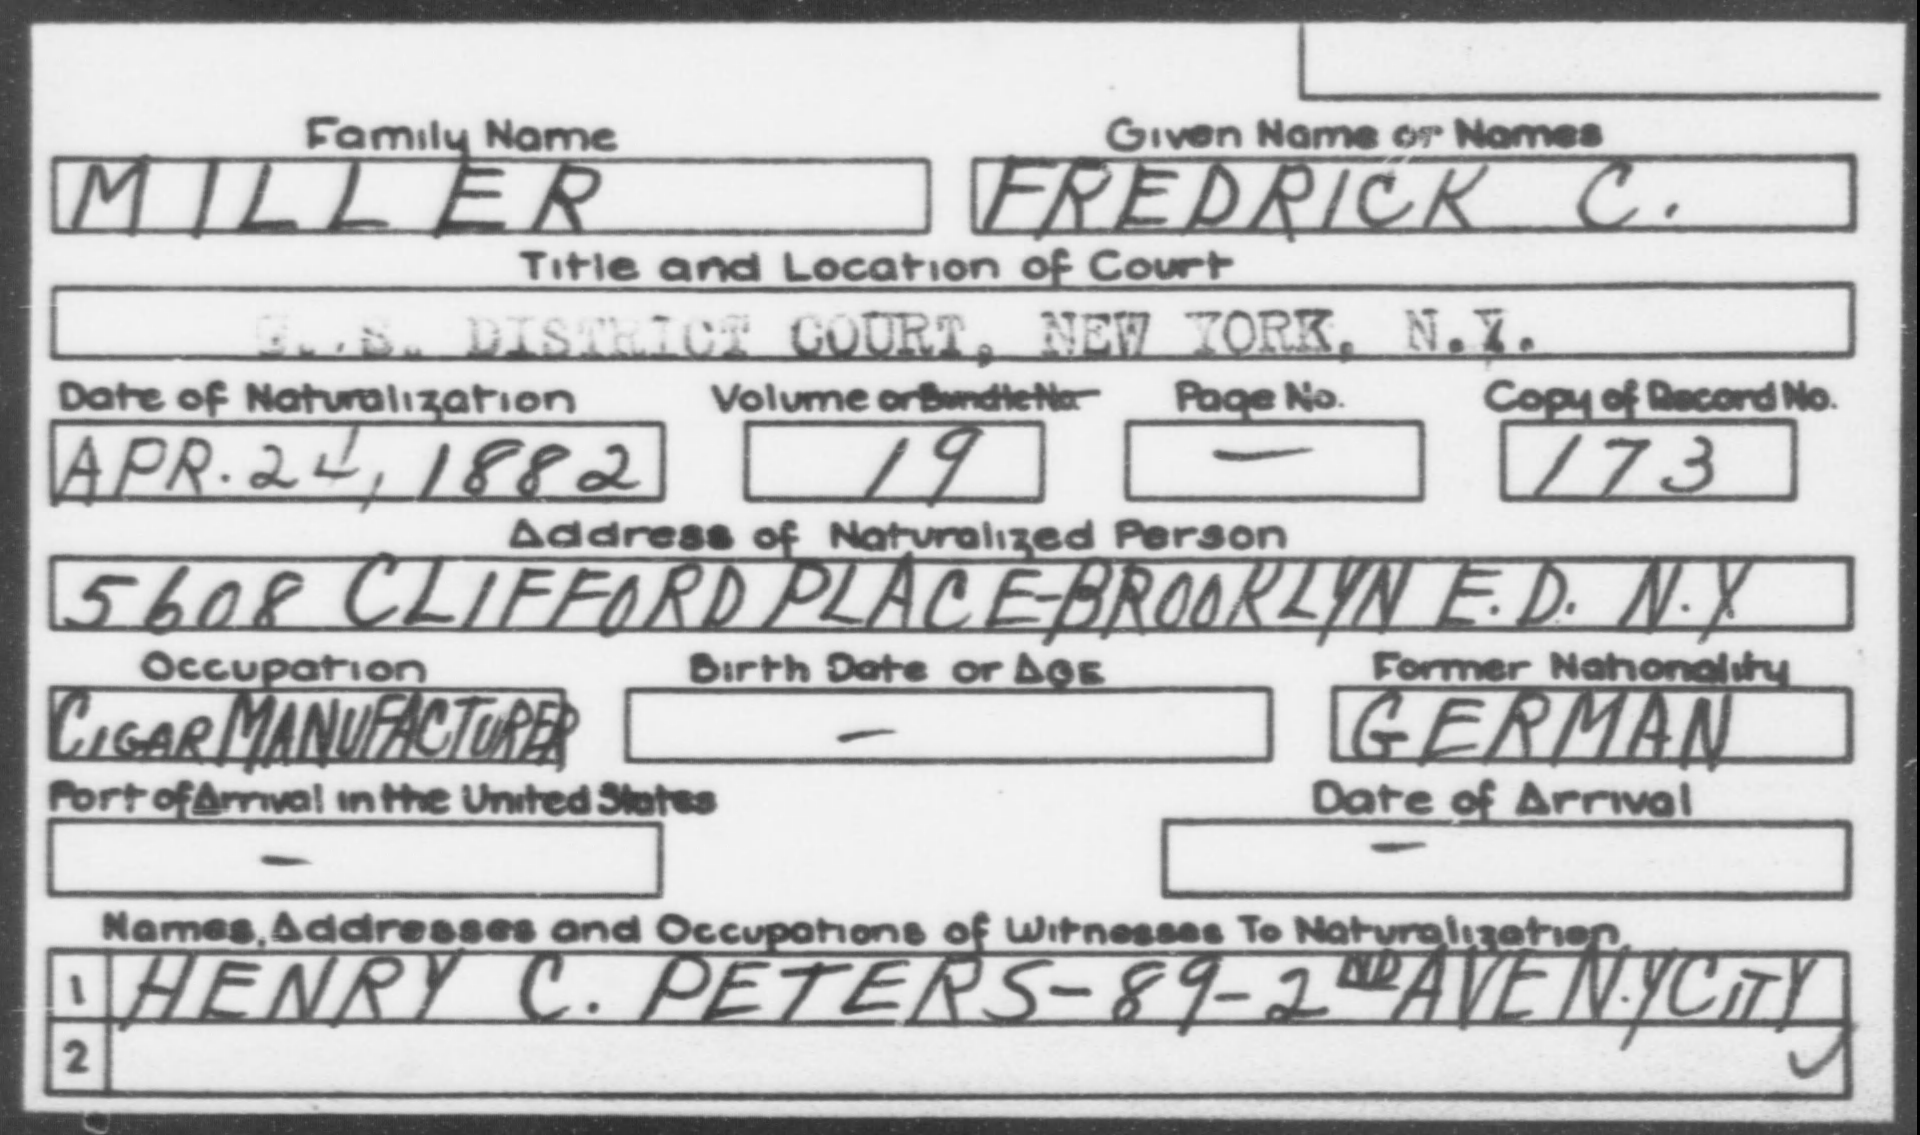 MILLER, FREDRICK C. - Born: [BLANK], Naturalized: 1882